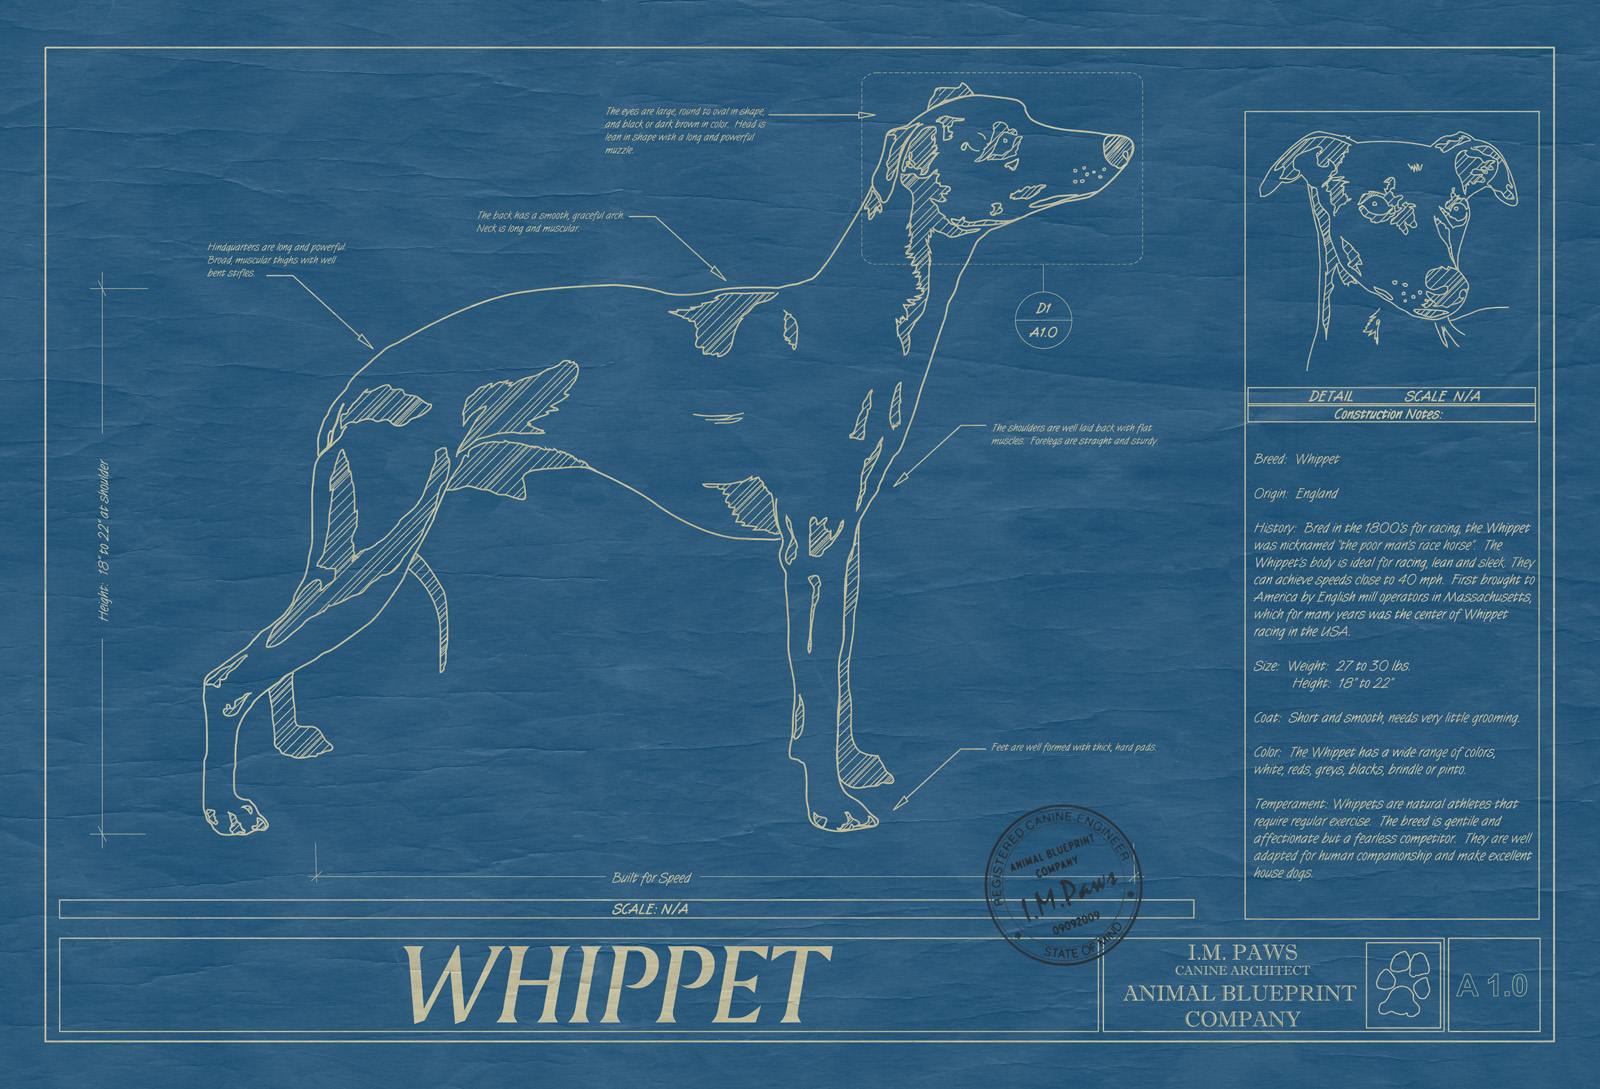 Whippet animal blueprint company whoodle dog blueprint malvernweather Image collections